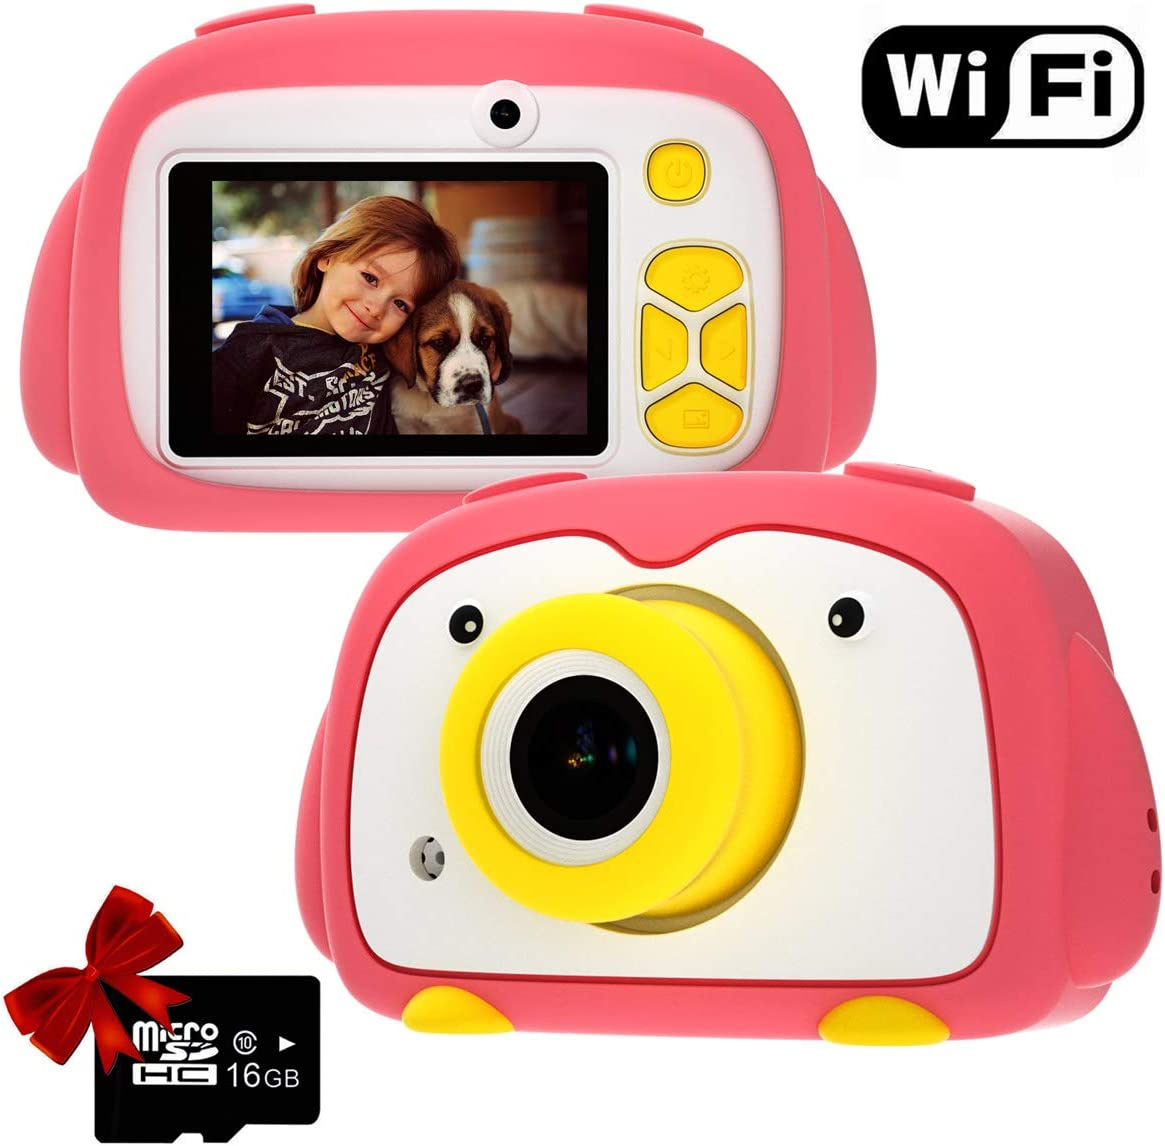 Kids Camera PANNOVO WiFi Digital Cam for Girls Rechargeable Video Recorder Cartoon Shockproof Silicone Case with 16GB SD Card 24MP HD 720P 2 Inch Screen for 3-12 Year Old Boys Toddler - Pink